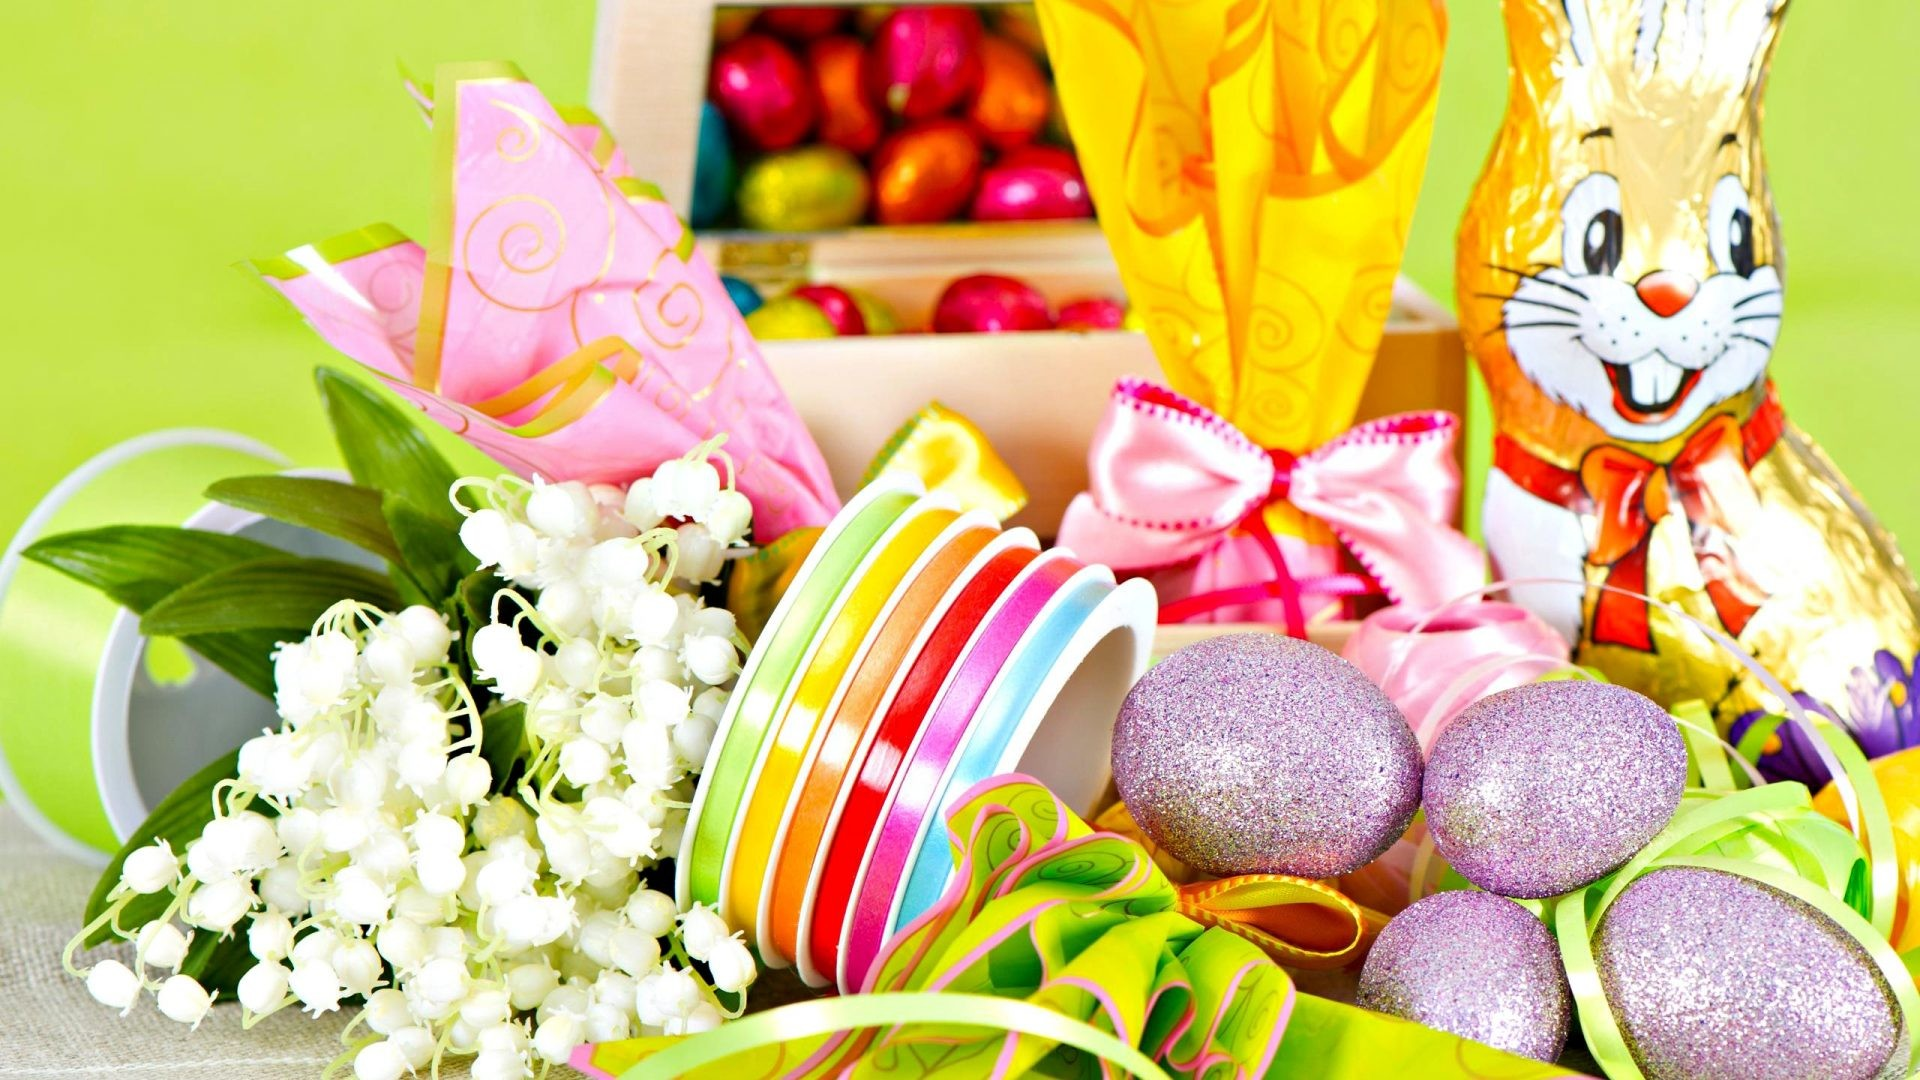 #BB2222 Color – Pretty Still Happy Bouquet Reflection Eggs Beauty Beautiful  Chocolate Flowers Mirror Time